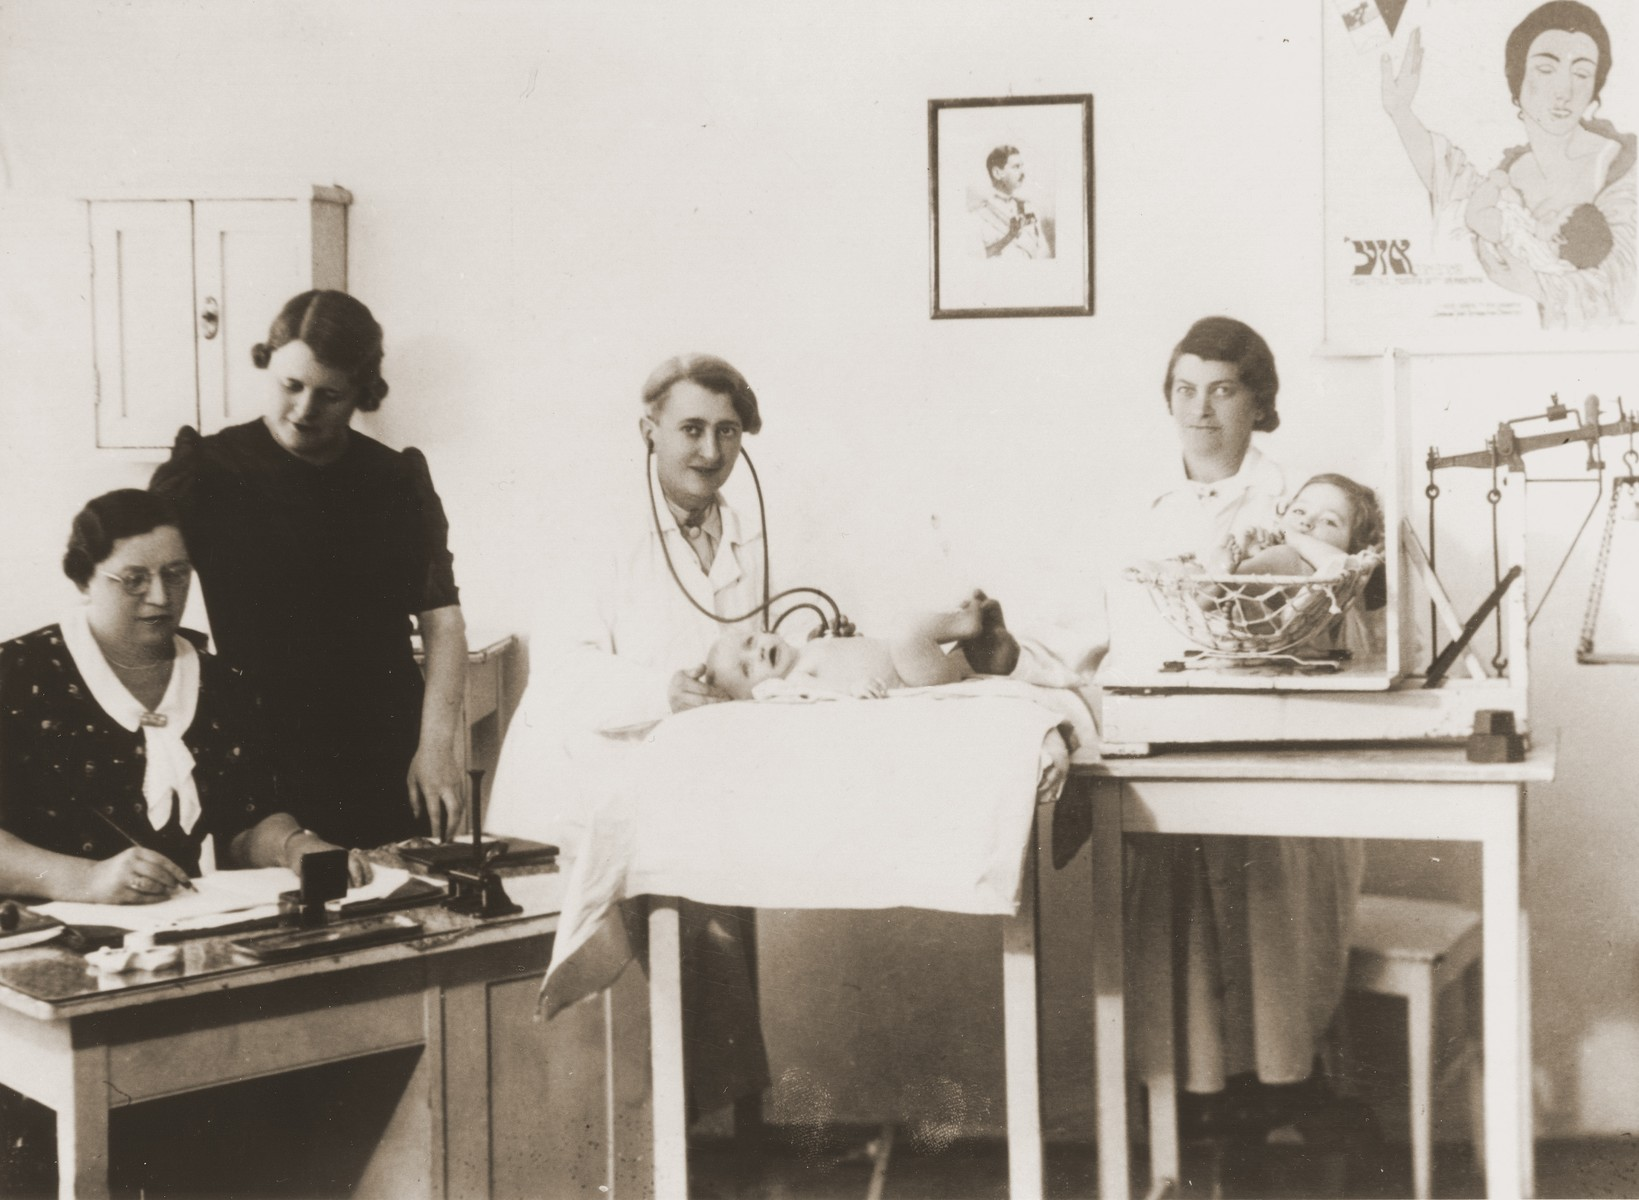 Infants are weighed and examined at the OSE clinic in Cernauti, Romania.   Among those pictured are Anny (Hubner) Andermann (second from the left), president of the OSE; Dr. Salter, (center), OSE pediatrician; and Mrs. Zappler (right), an assistant.  Behind them on the wall is a portrait of King Carol of Romania.